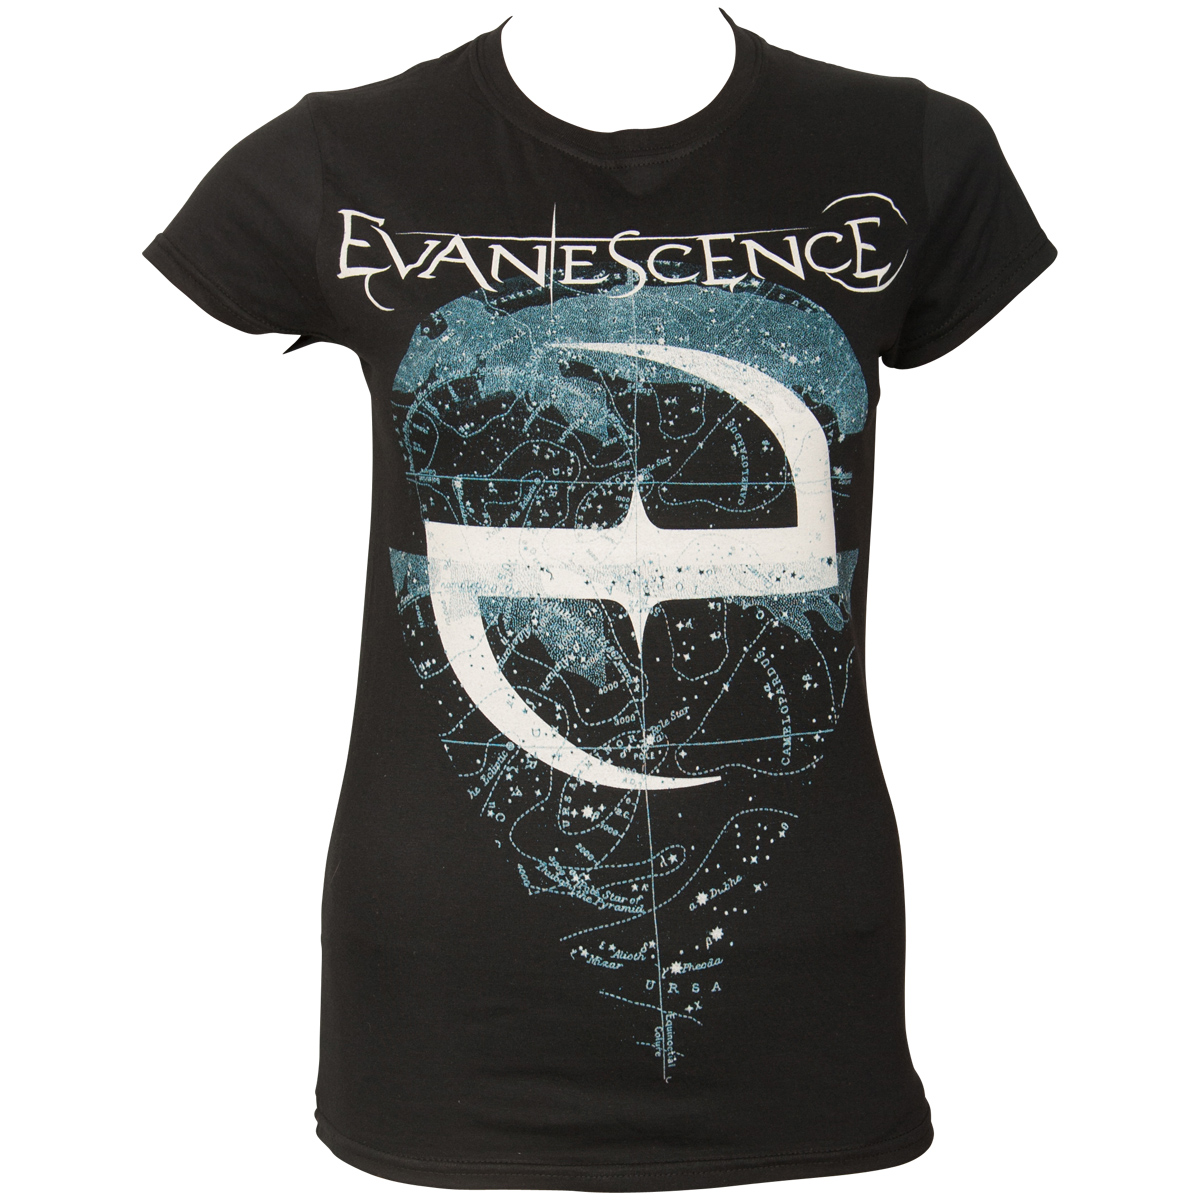 Evanescence - Damen T-Shirt Space Map - schwarz